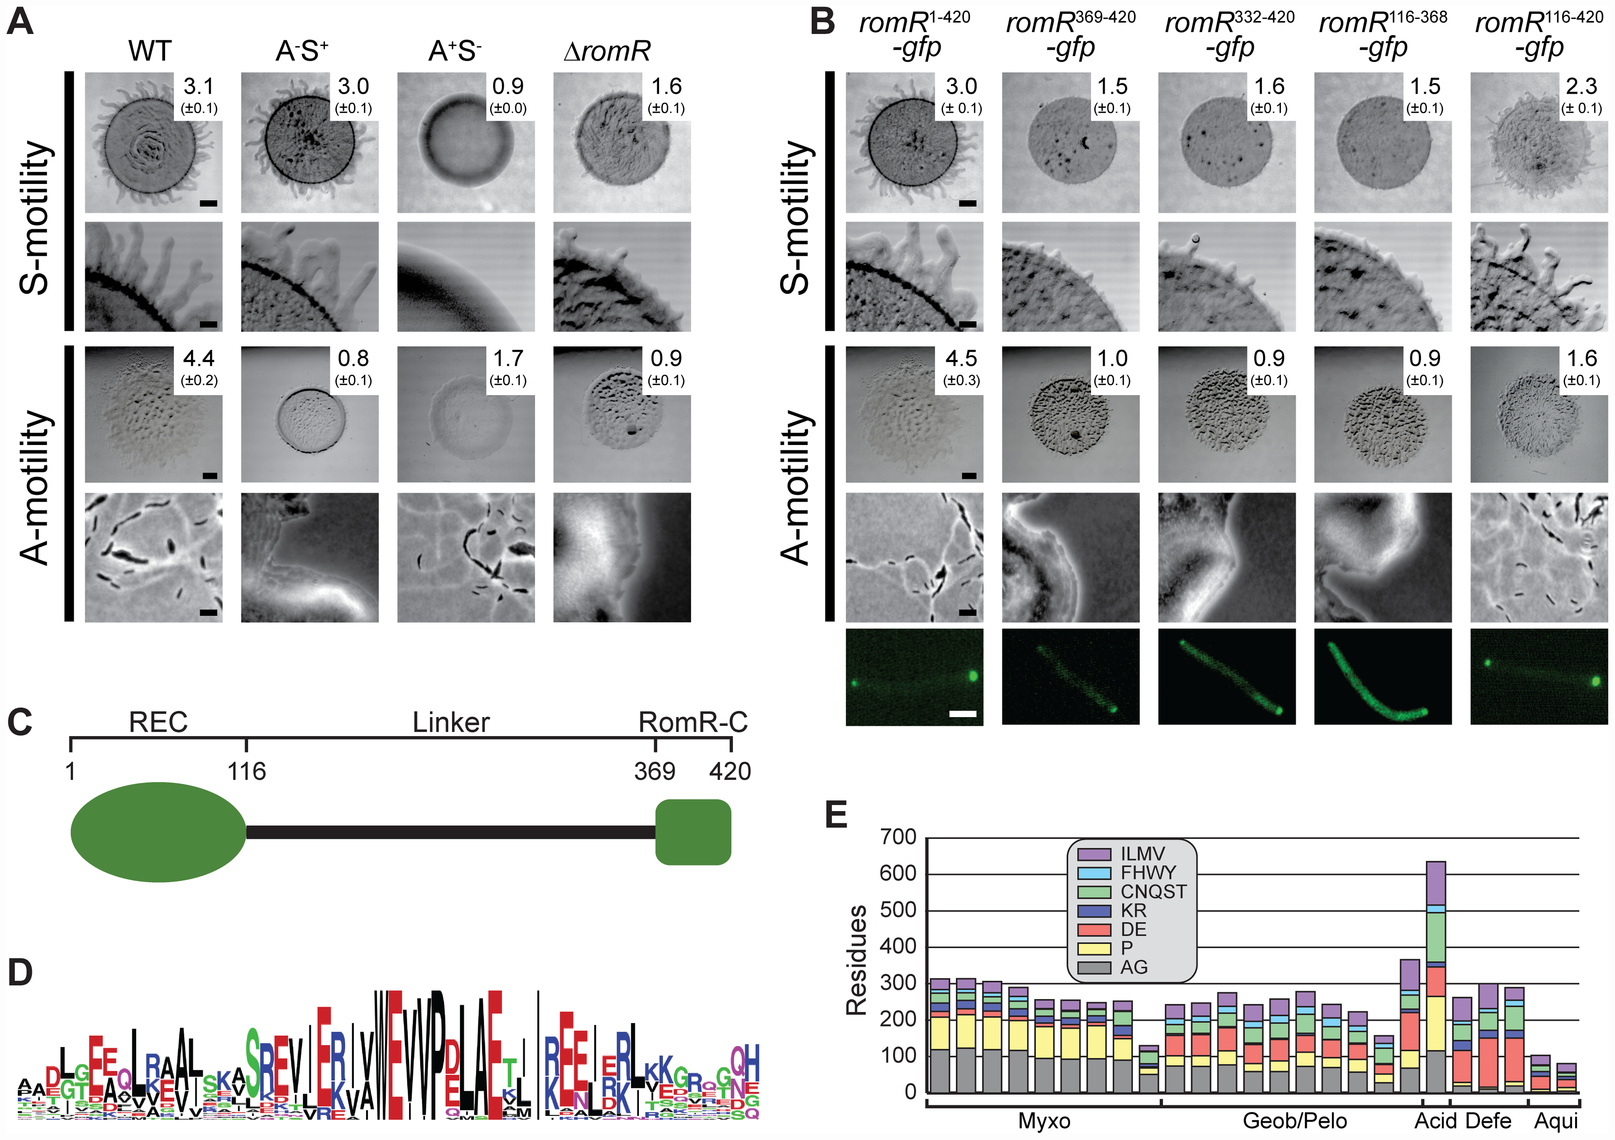 RomR is important for S- as well as for A-motility and contains two pole-targeting determinants.